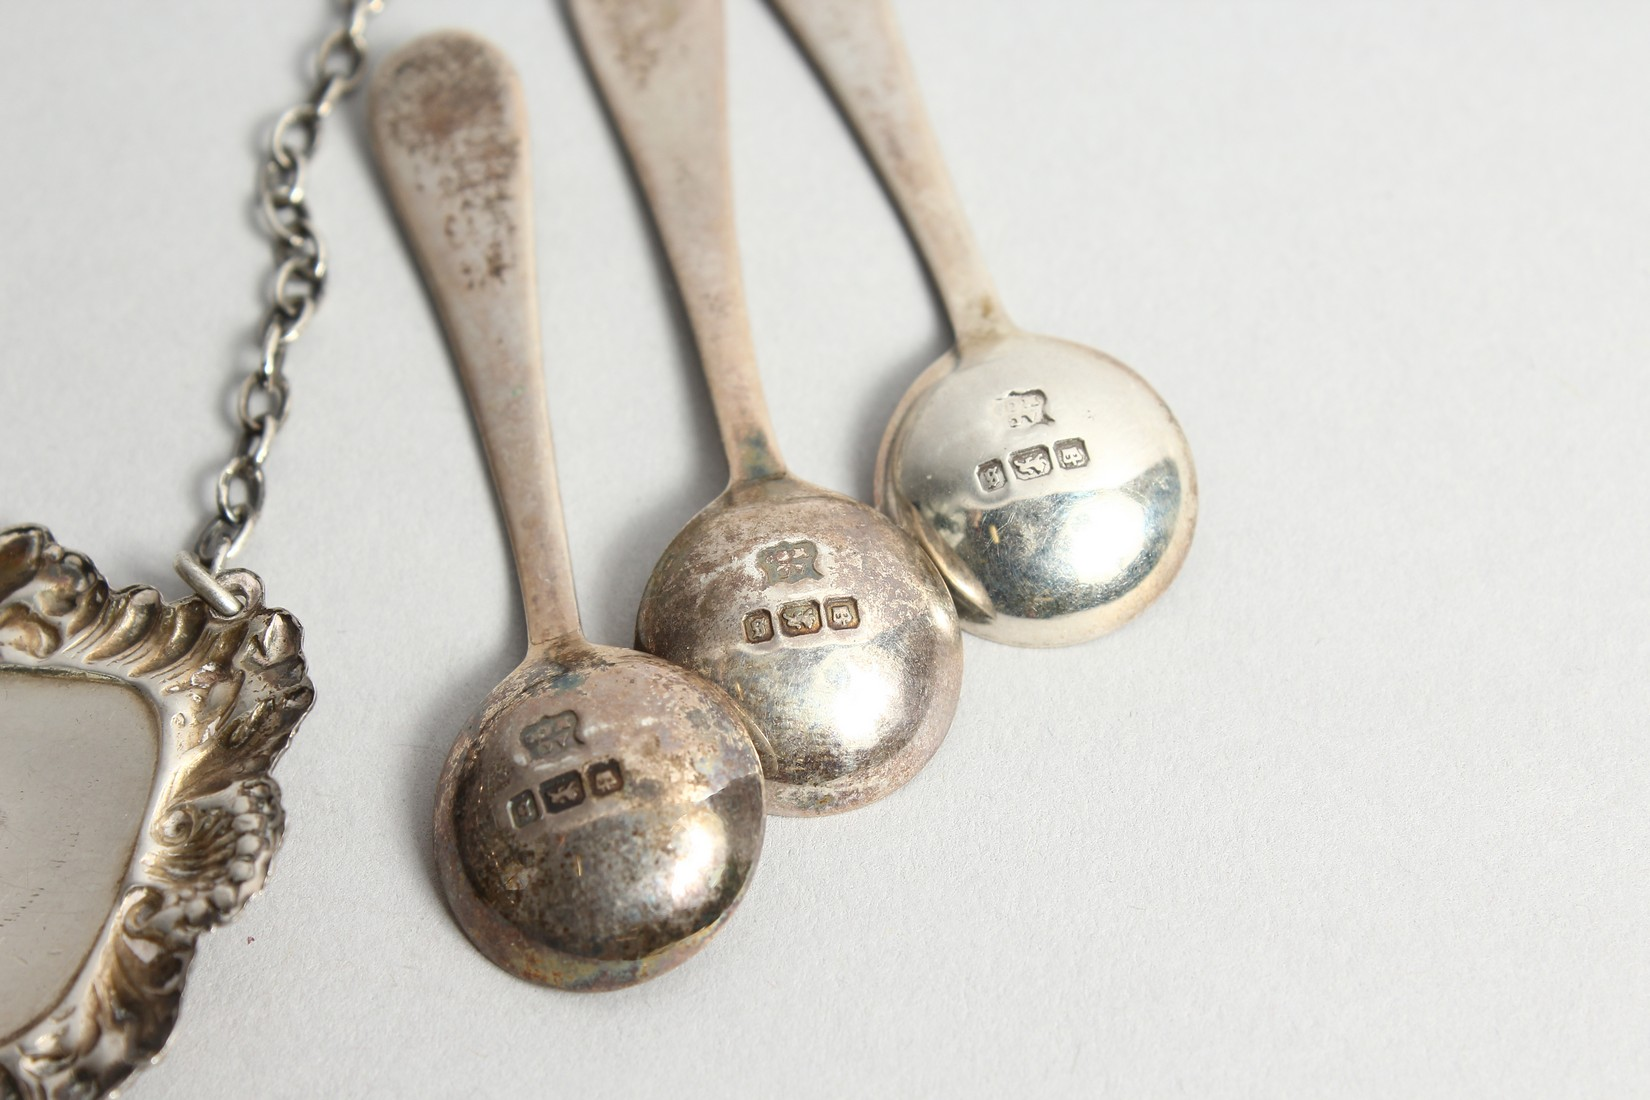 A SILVER BRANDY LABEL AND THREE SALT SPOONS - Image 4 of 4